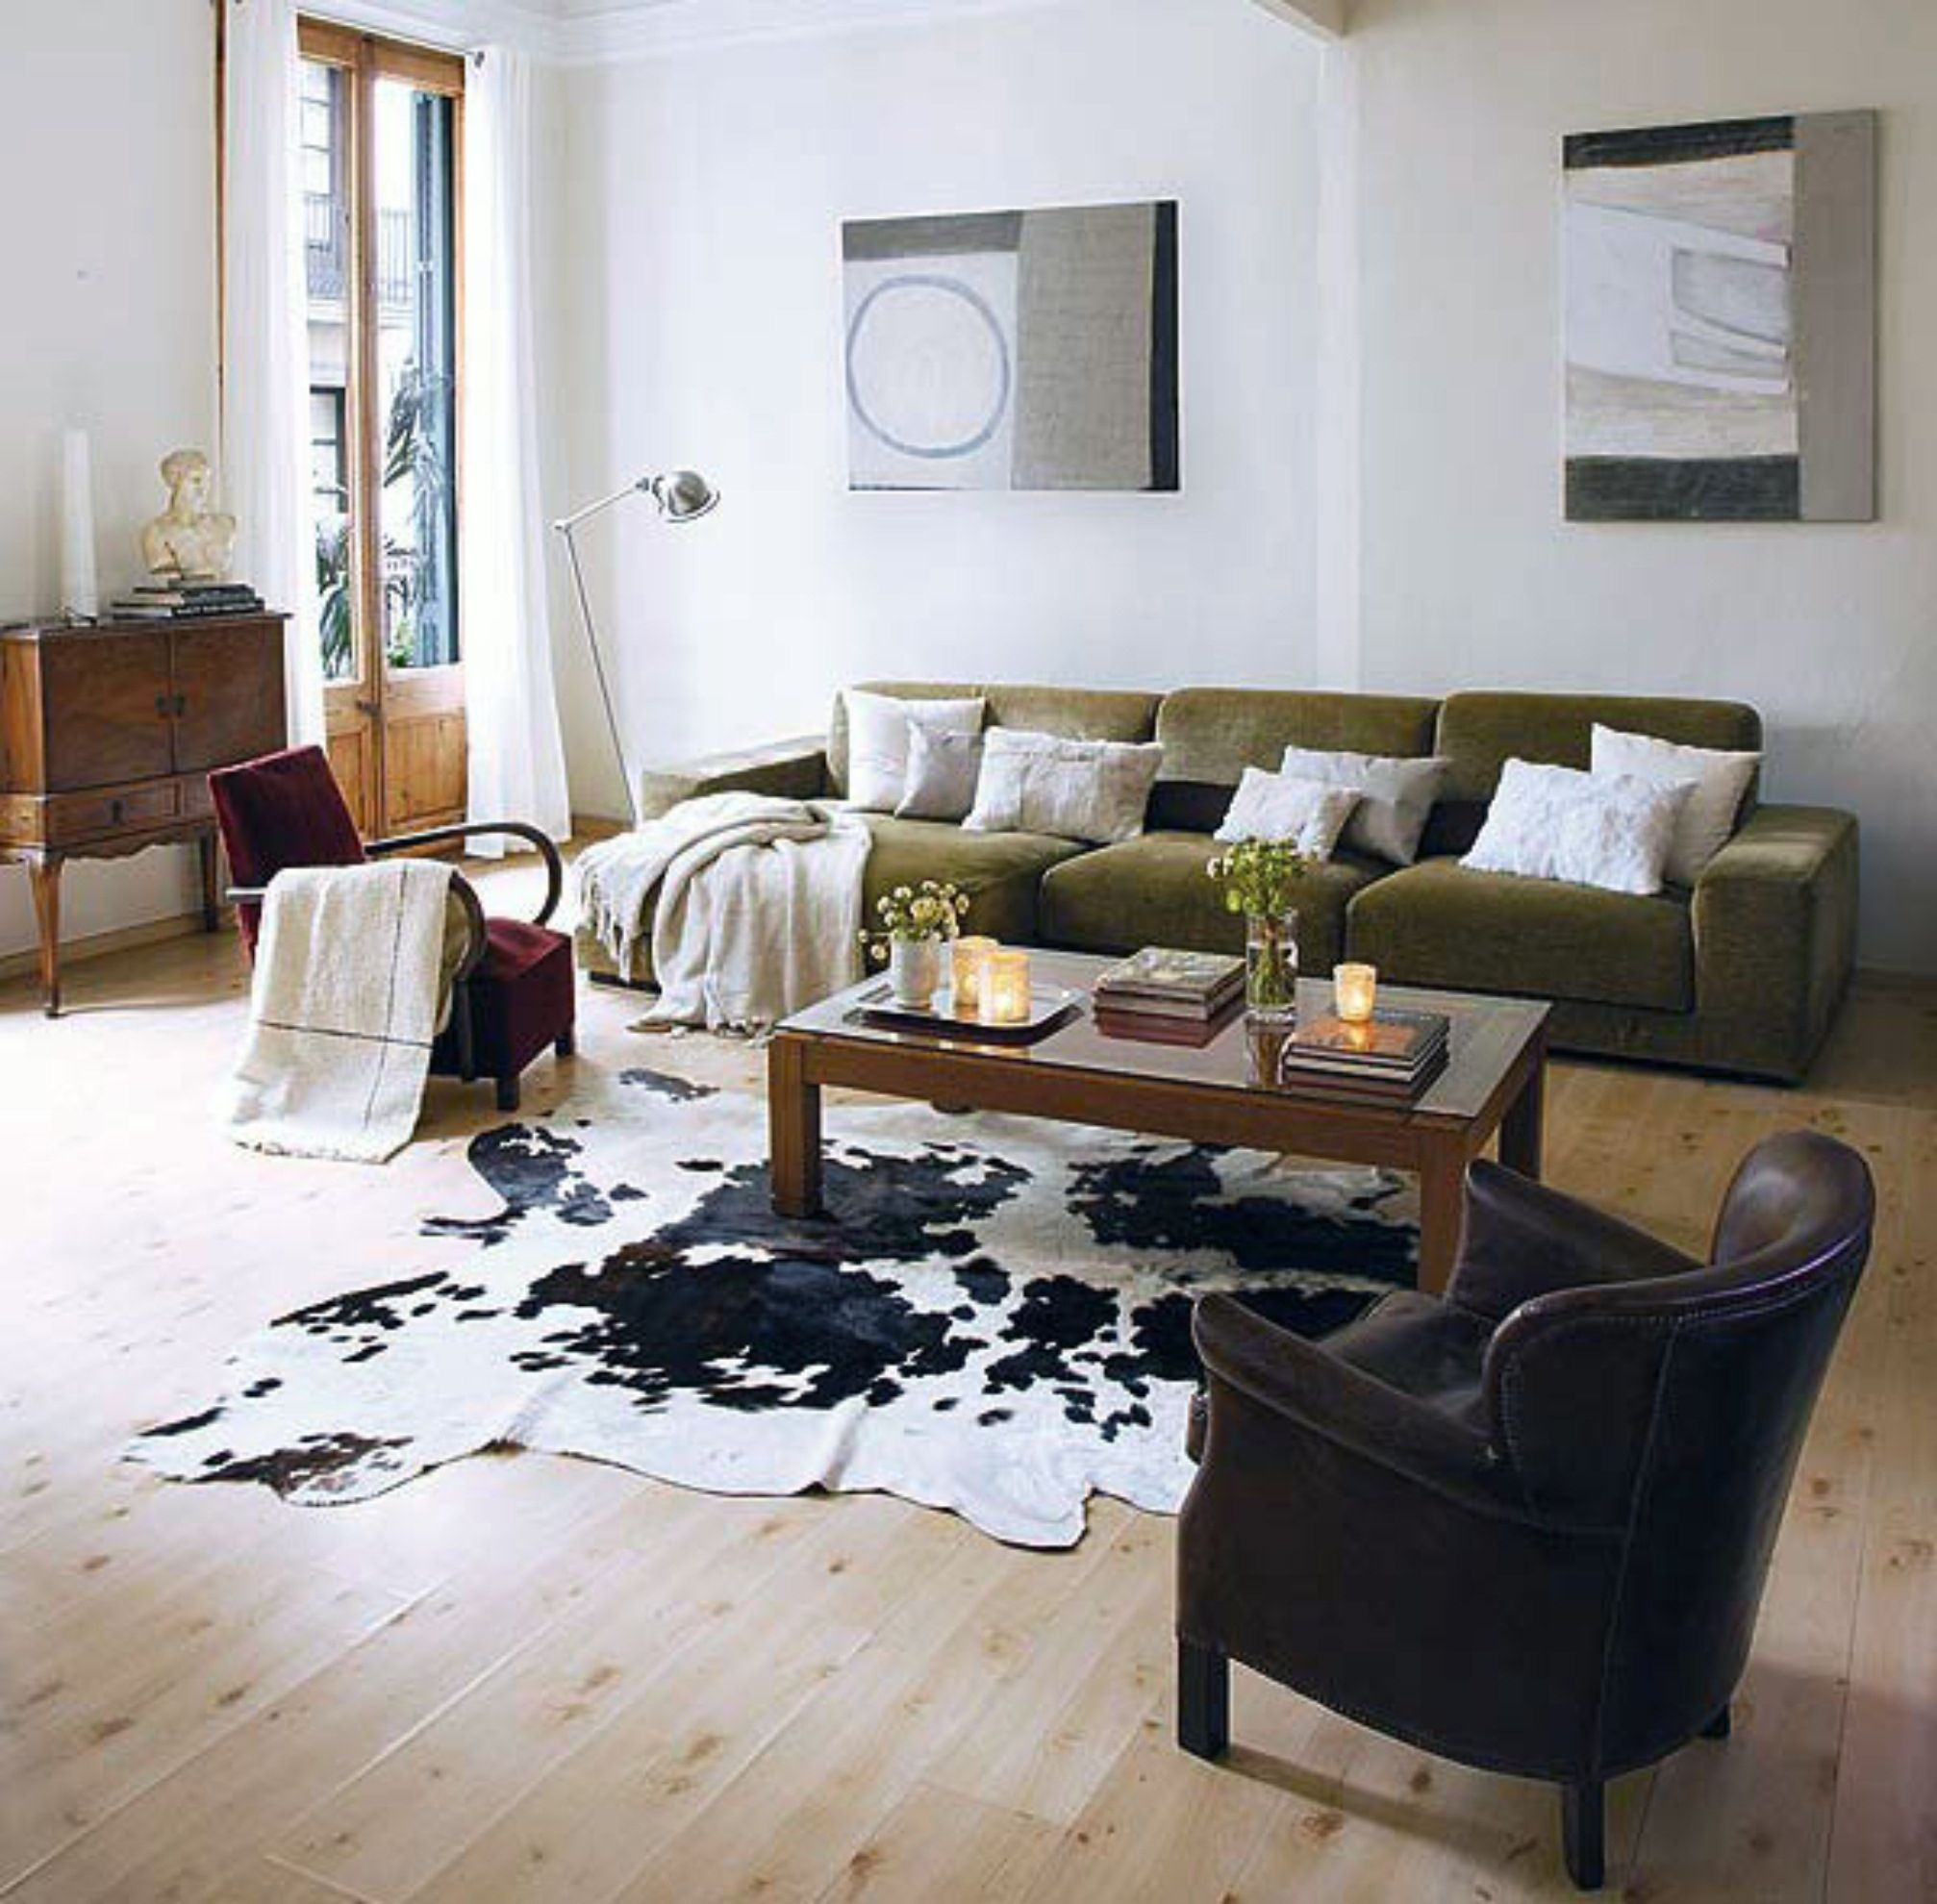 Decorating Black And White Cowhide Rug Living Room Decoration Dark Pastel Green Fabric Modern Cowhide Rug Living Room Elegant Living Room Design Cow Hide Rug